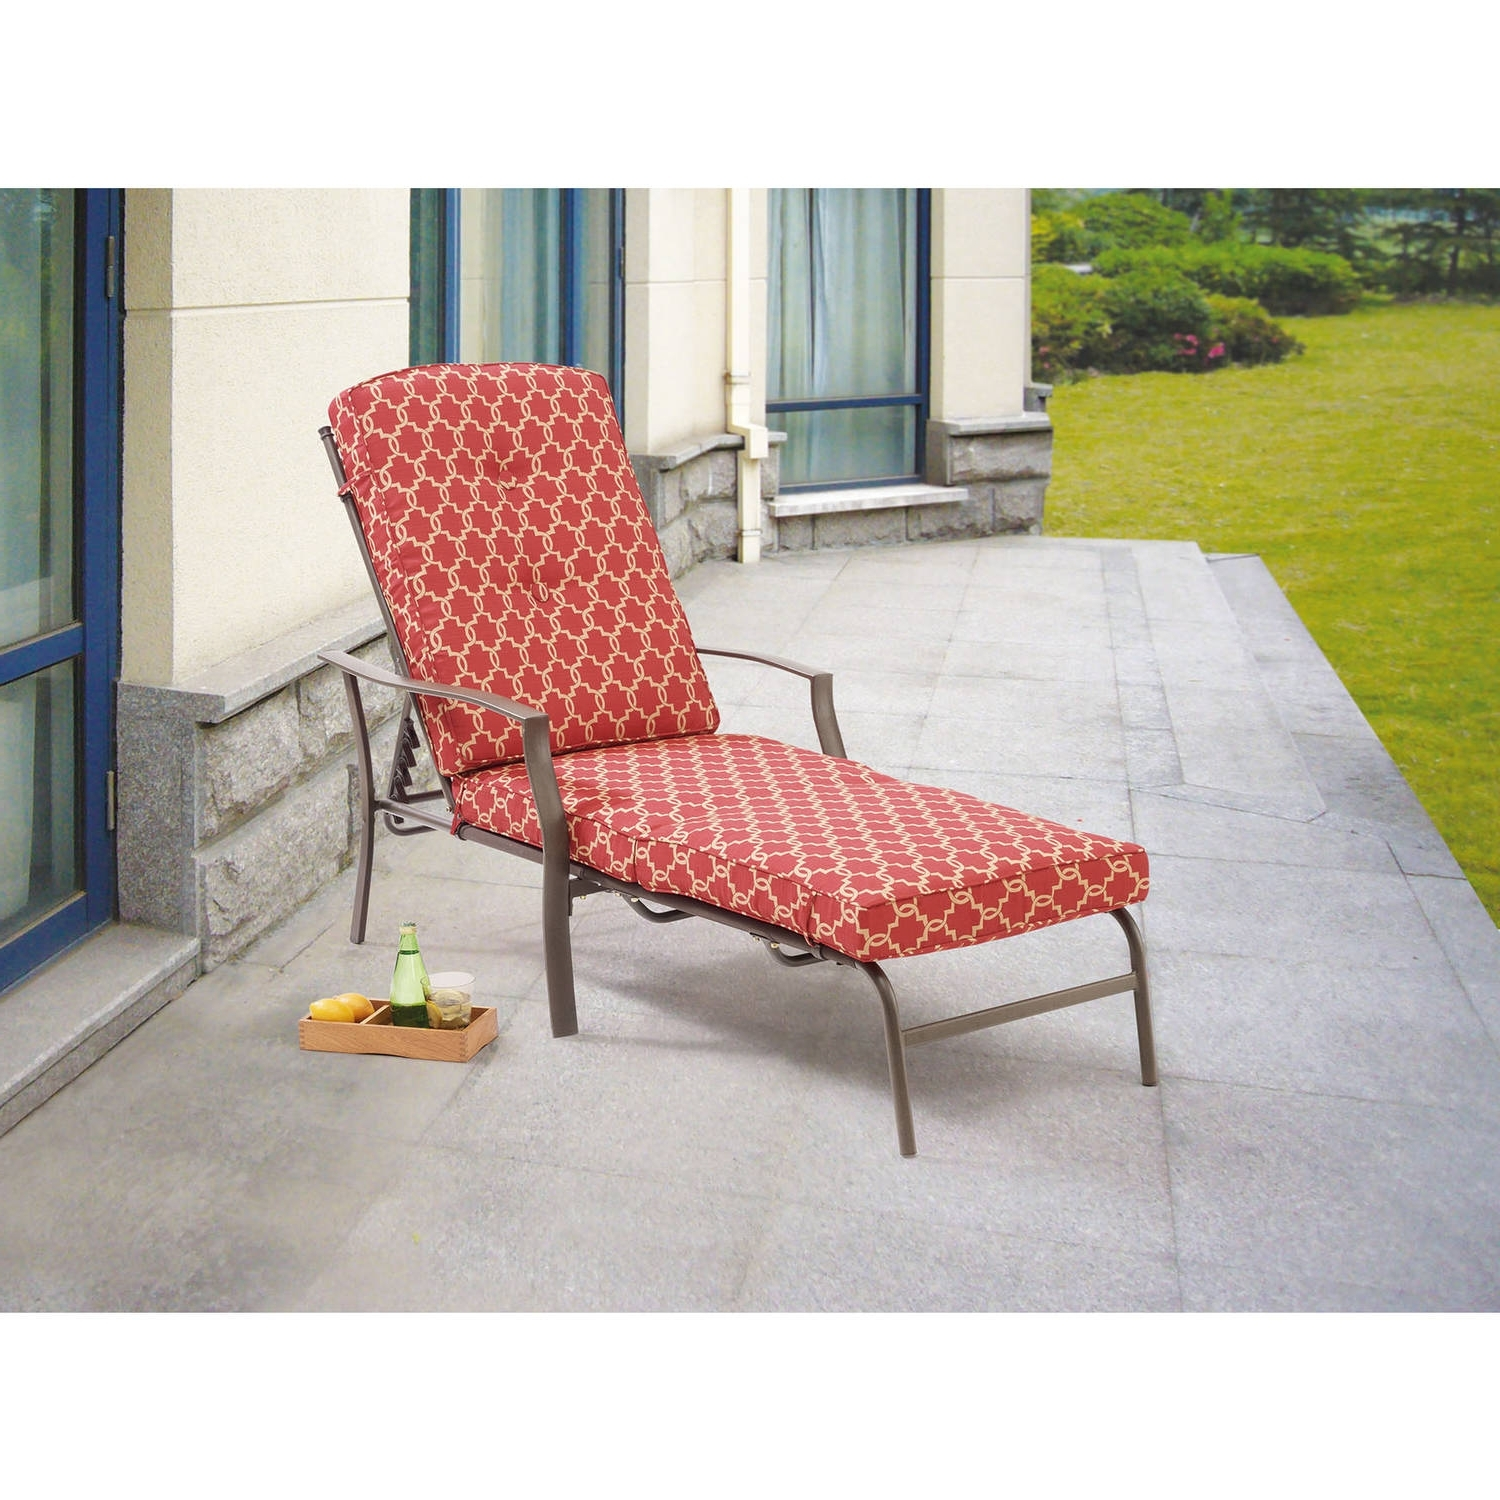 Martha Stewart Outdoor Chaise Lounge Chairs For Current Ideas Collection Martha Stewart Chaise Lounge In Chaise Lounge (View 5 of 15)